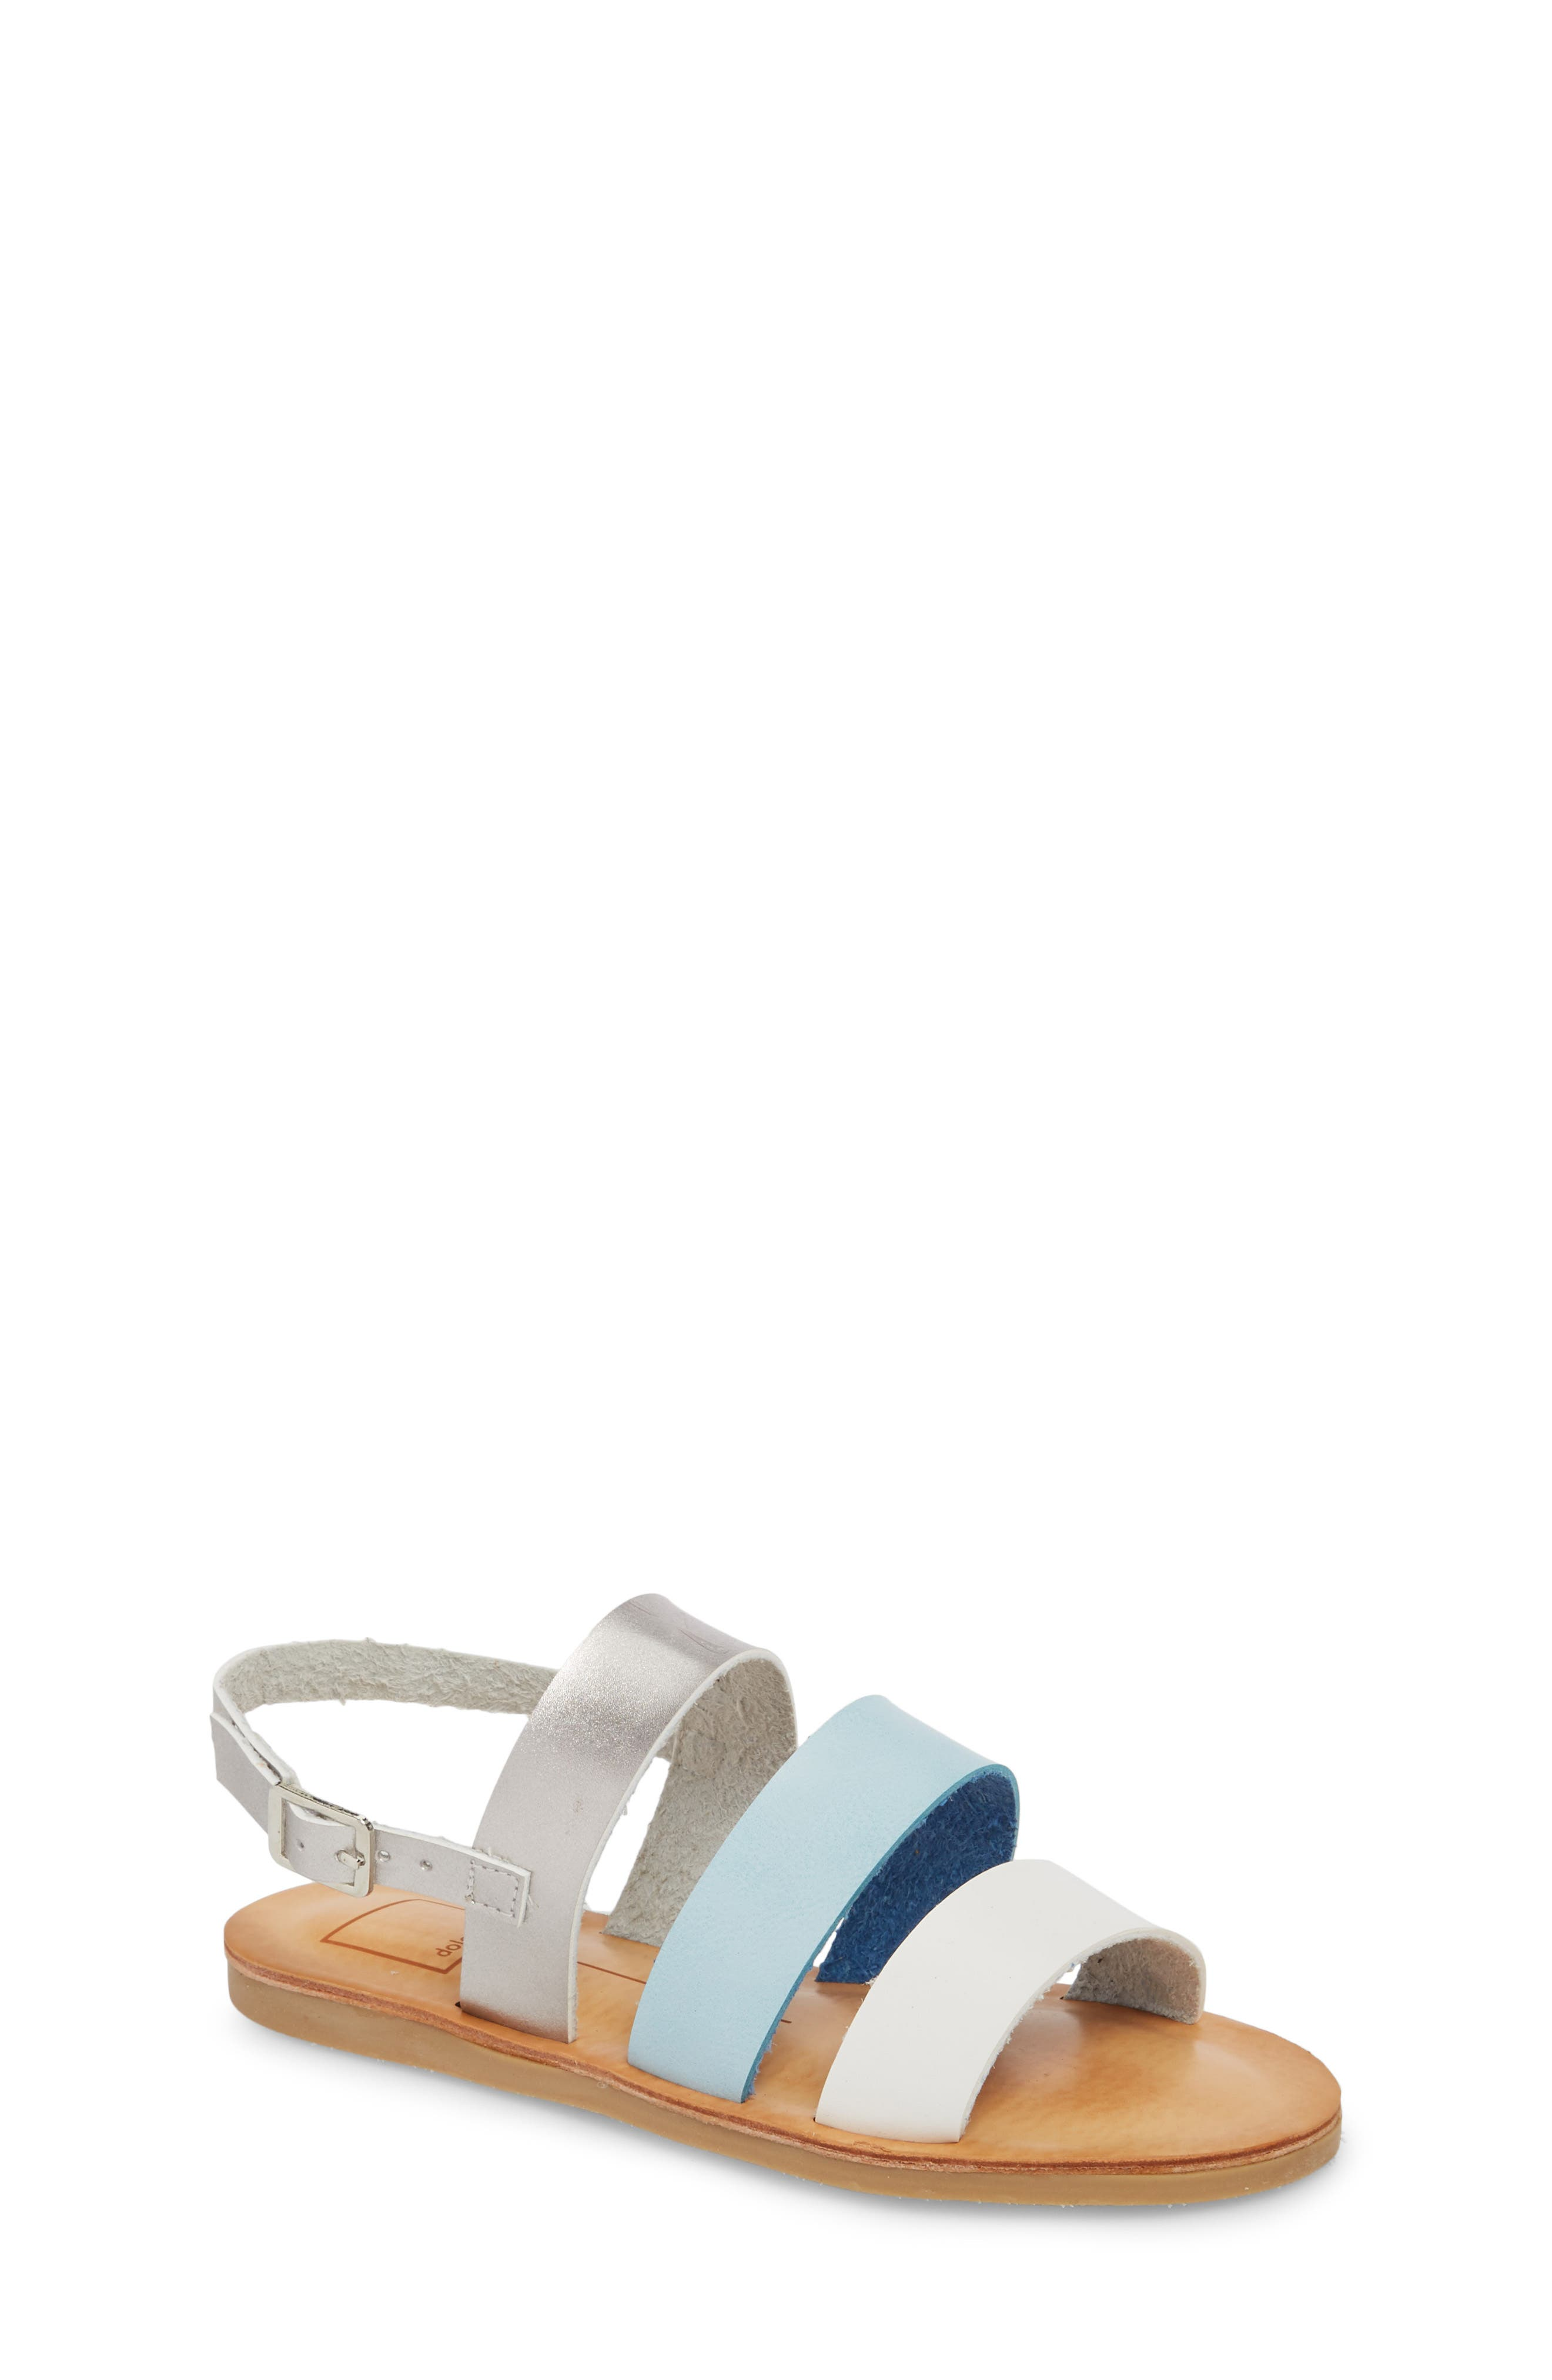 Dolce Vita Joy Sandal (Toddler, Little Kid & Big Kid)